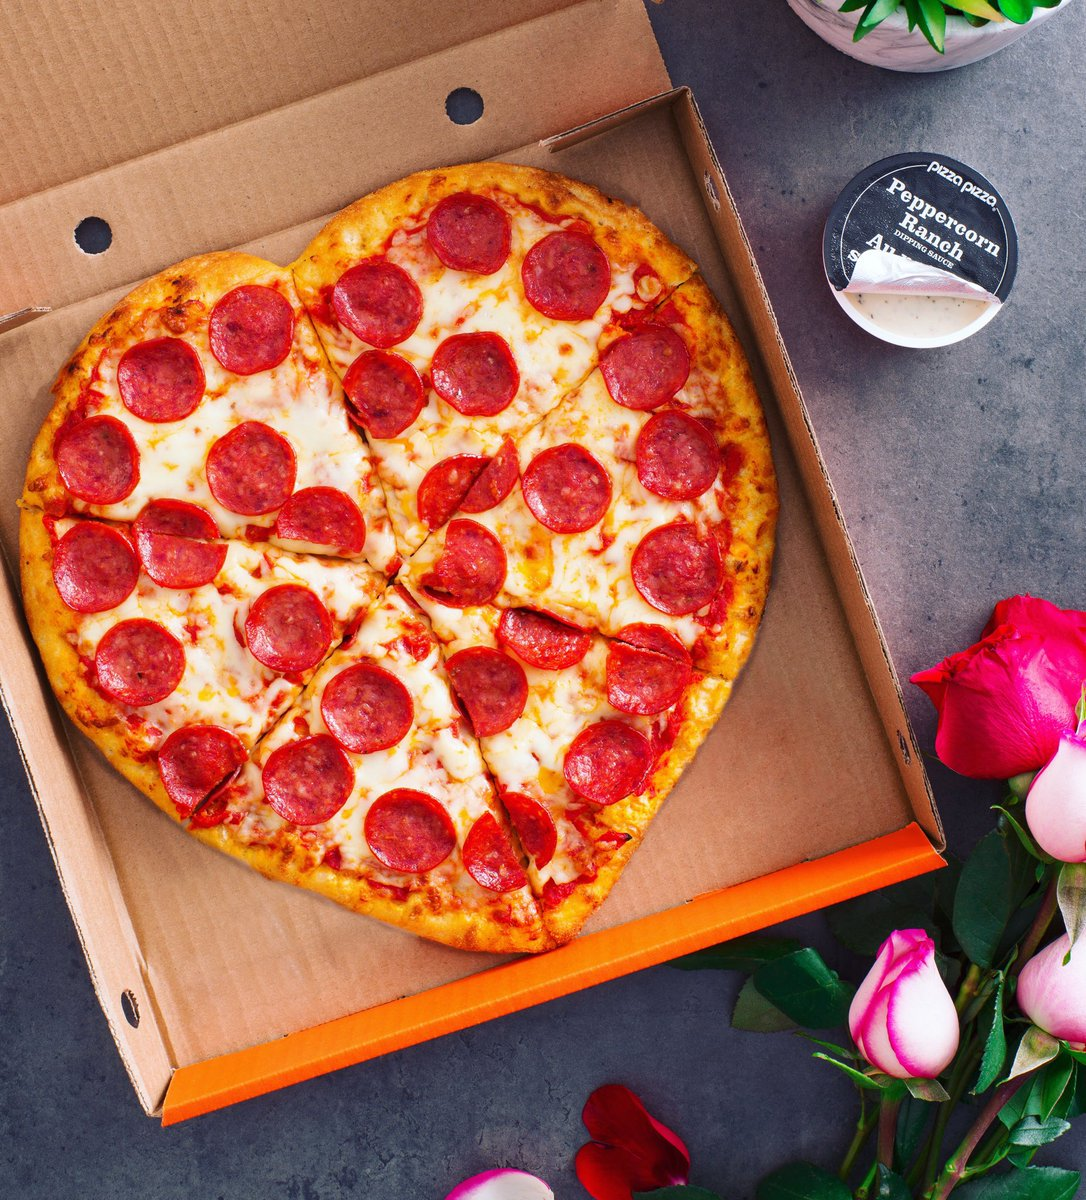 Roses are red, violets are blue, all you need this Valentine's Day is a Heart Pizza for two.  Tag your Valentine for a chance to win a $50 Gift Card!